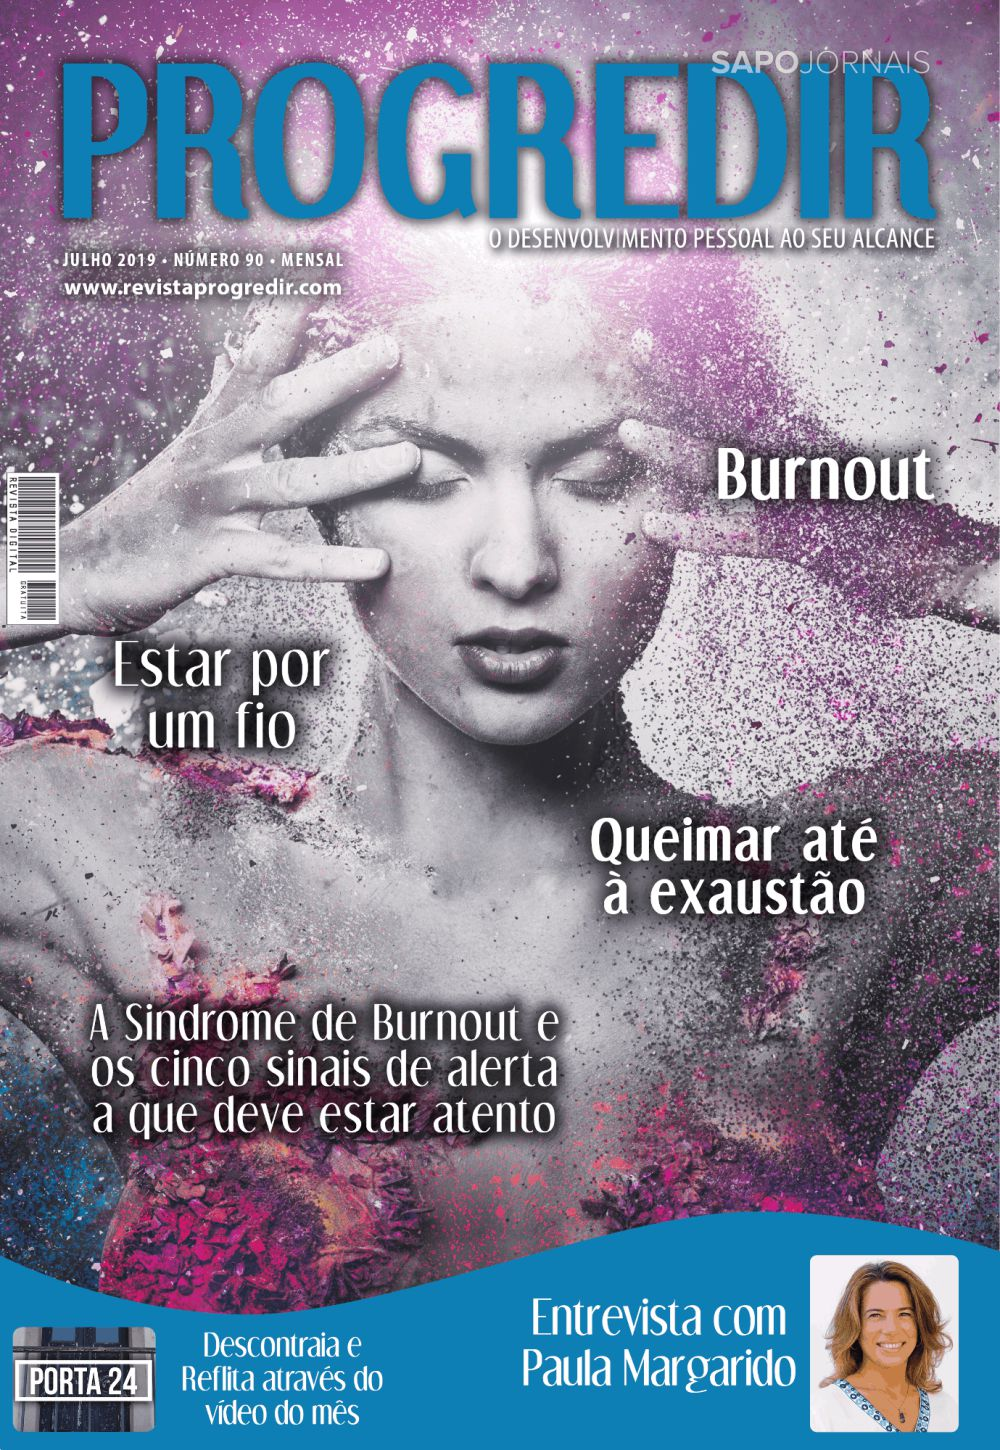 Capa da Revista Progredir